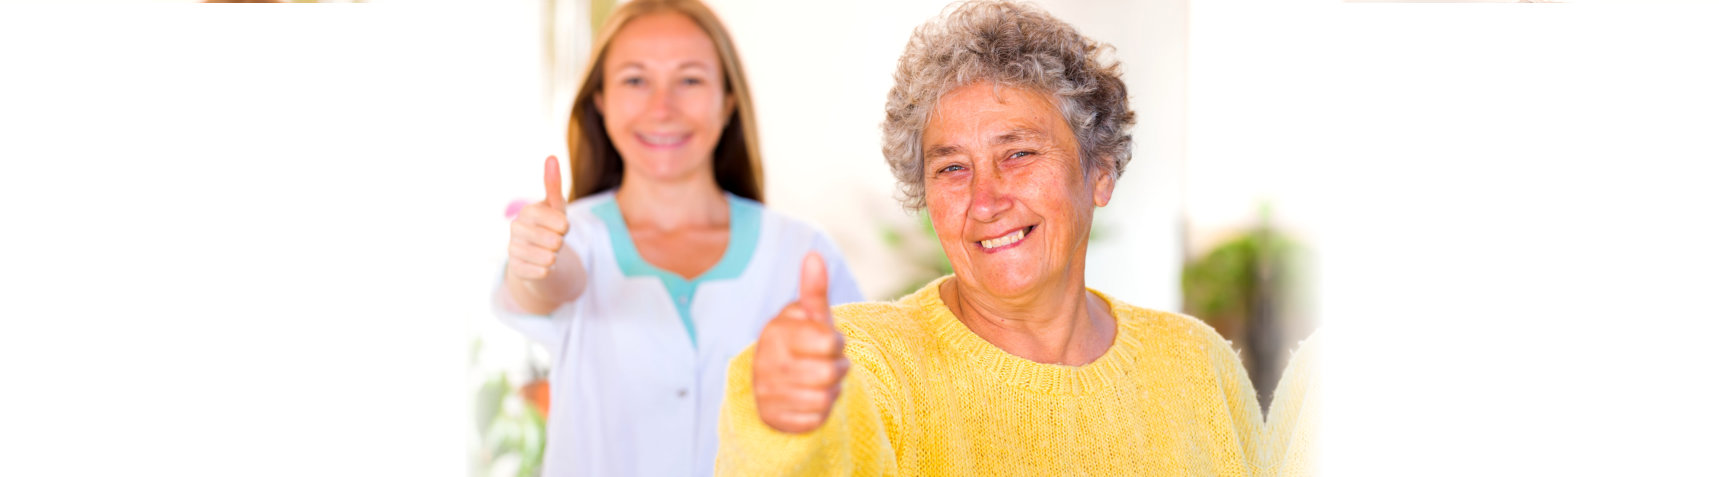 smiling caregiver and old woman doing thumbs up